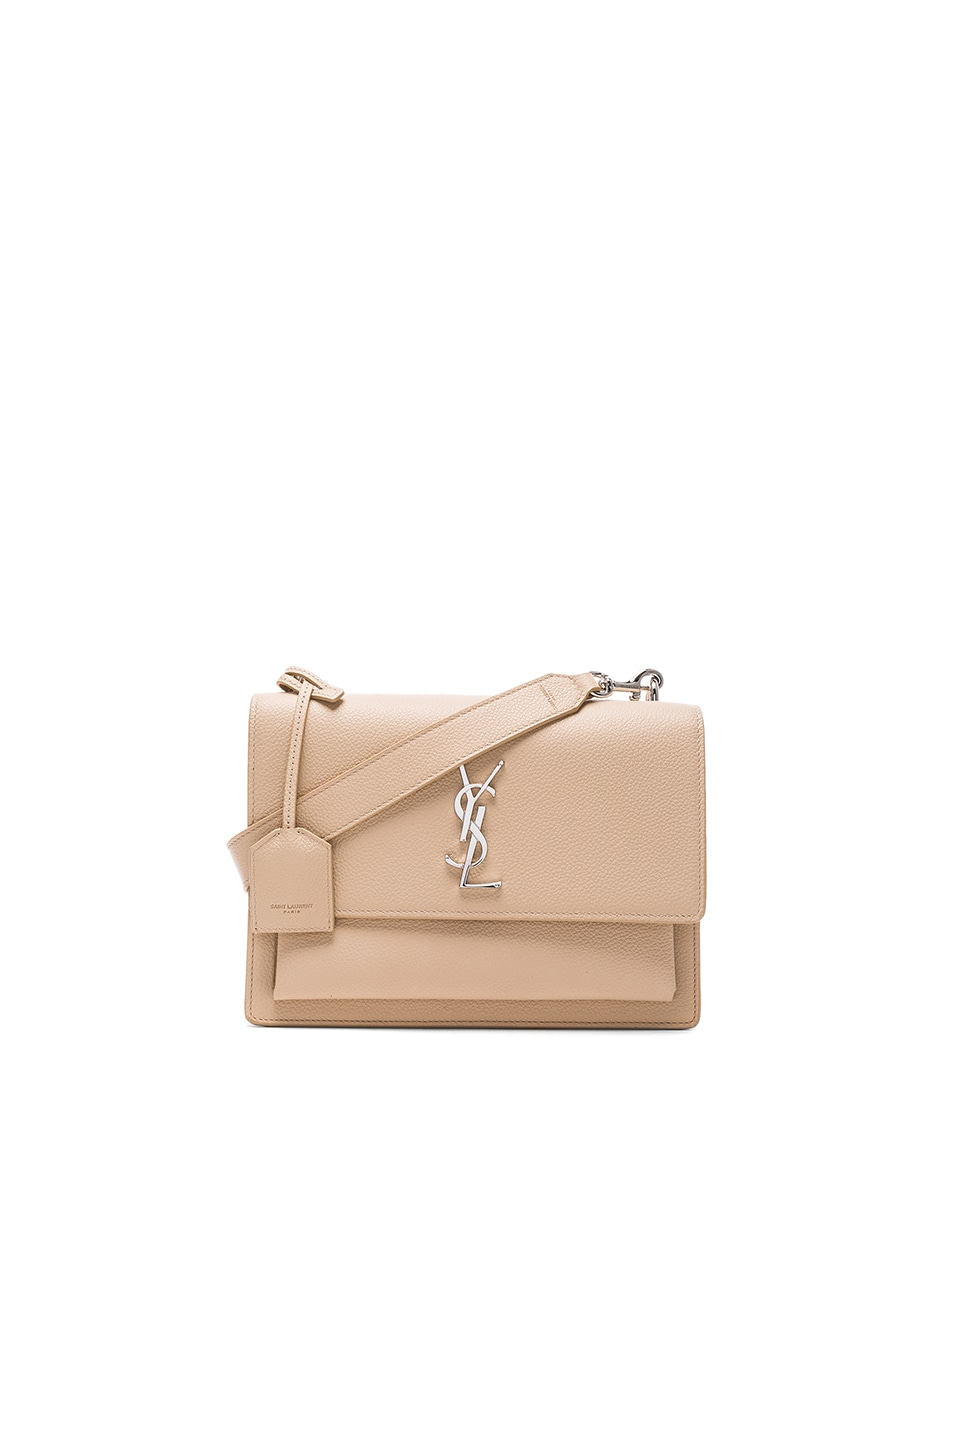 Image 1 of Saint Laurent Sunset Medium Monogramme Chain Bag in Poudre